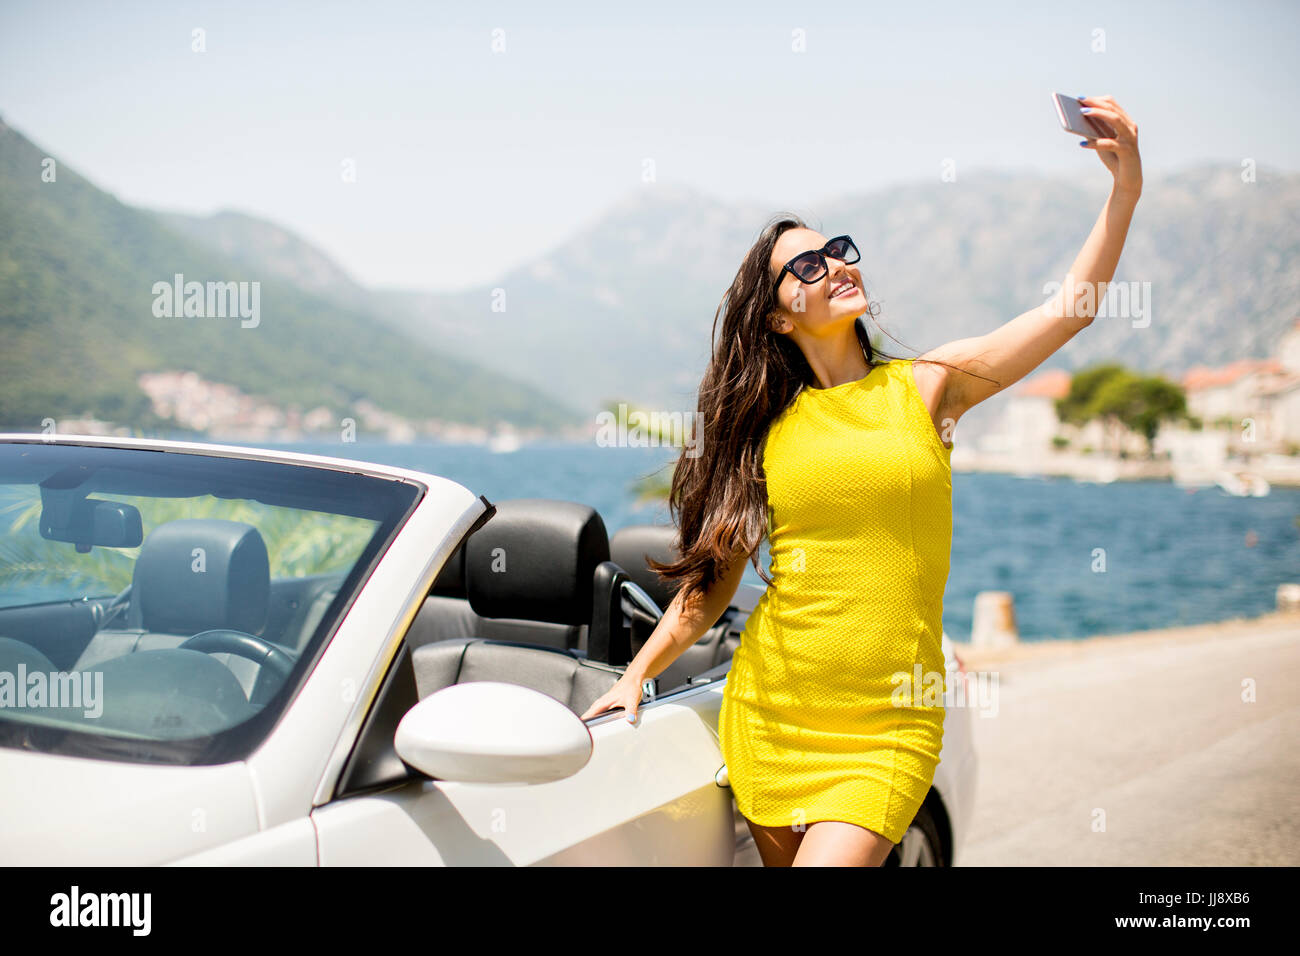 Pretty young woman in yellow dress taking selfie with mobile phone by white cabriolet car Stock Photo